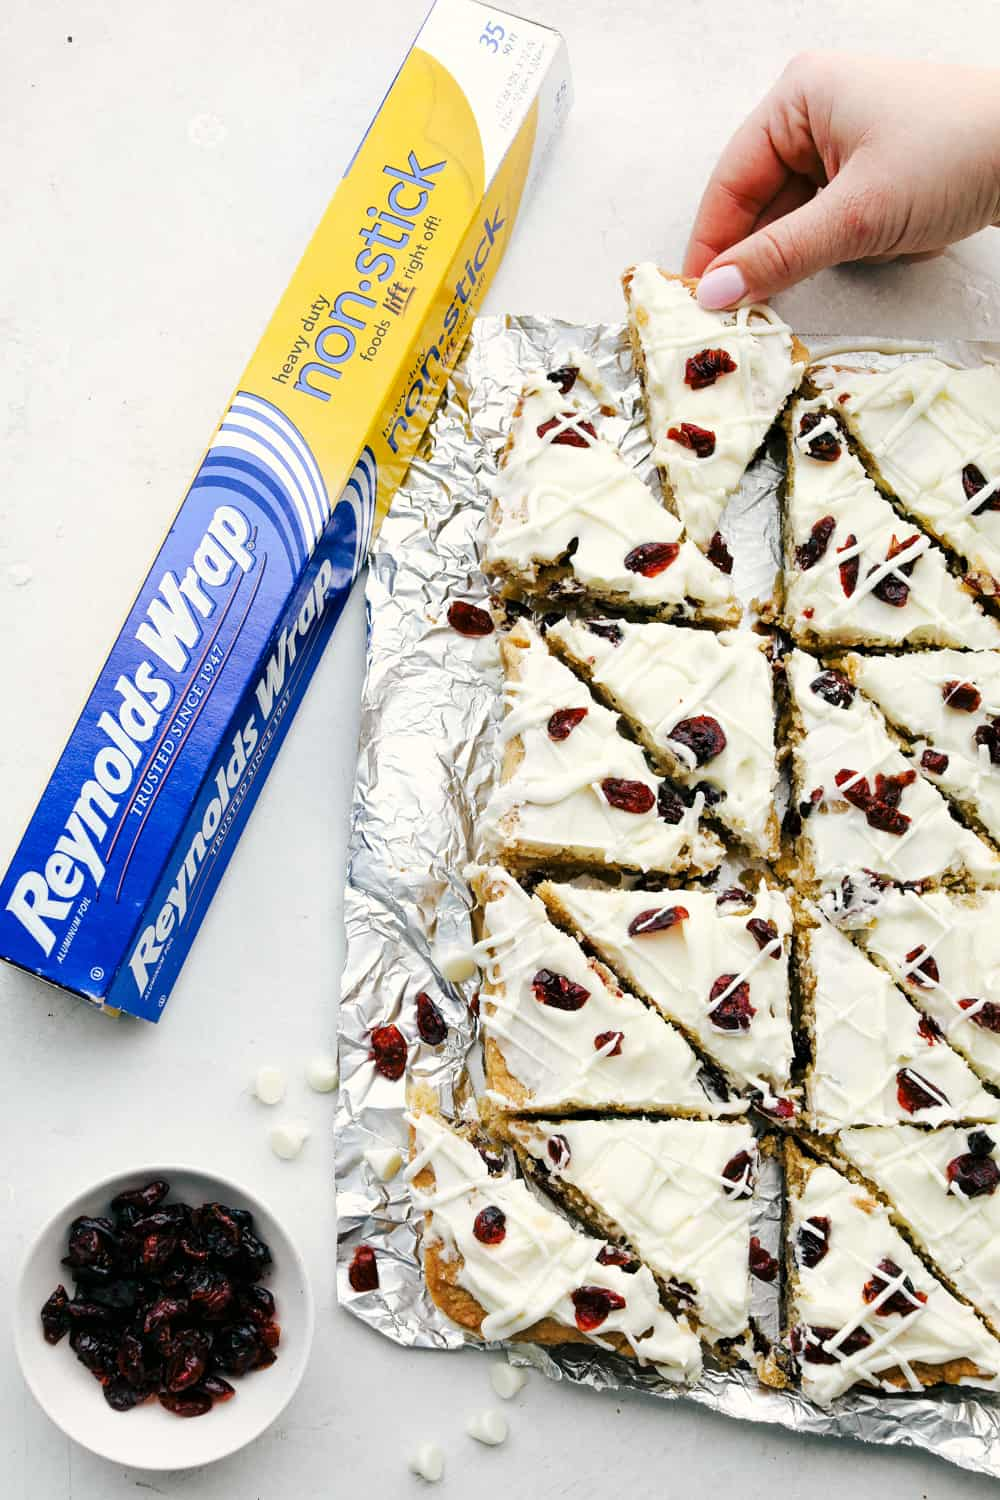 Cranberry bliss bars cut into triangles.